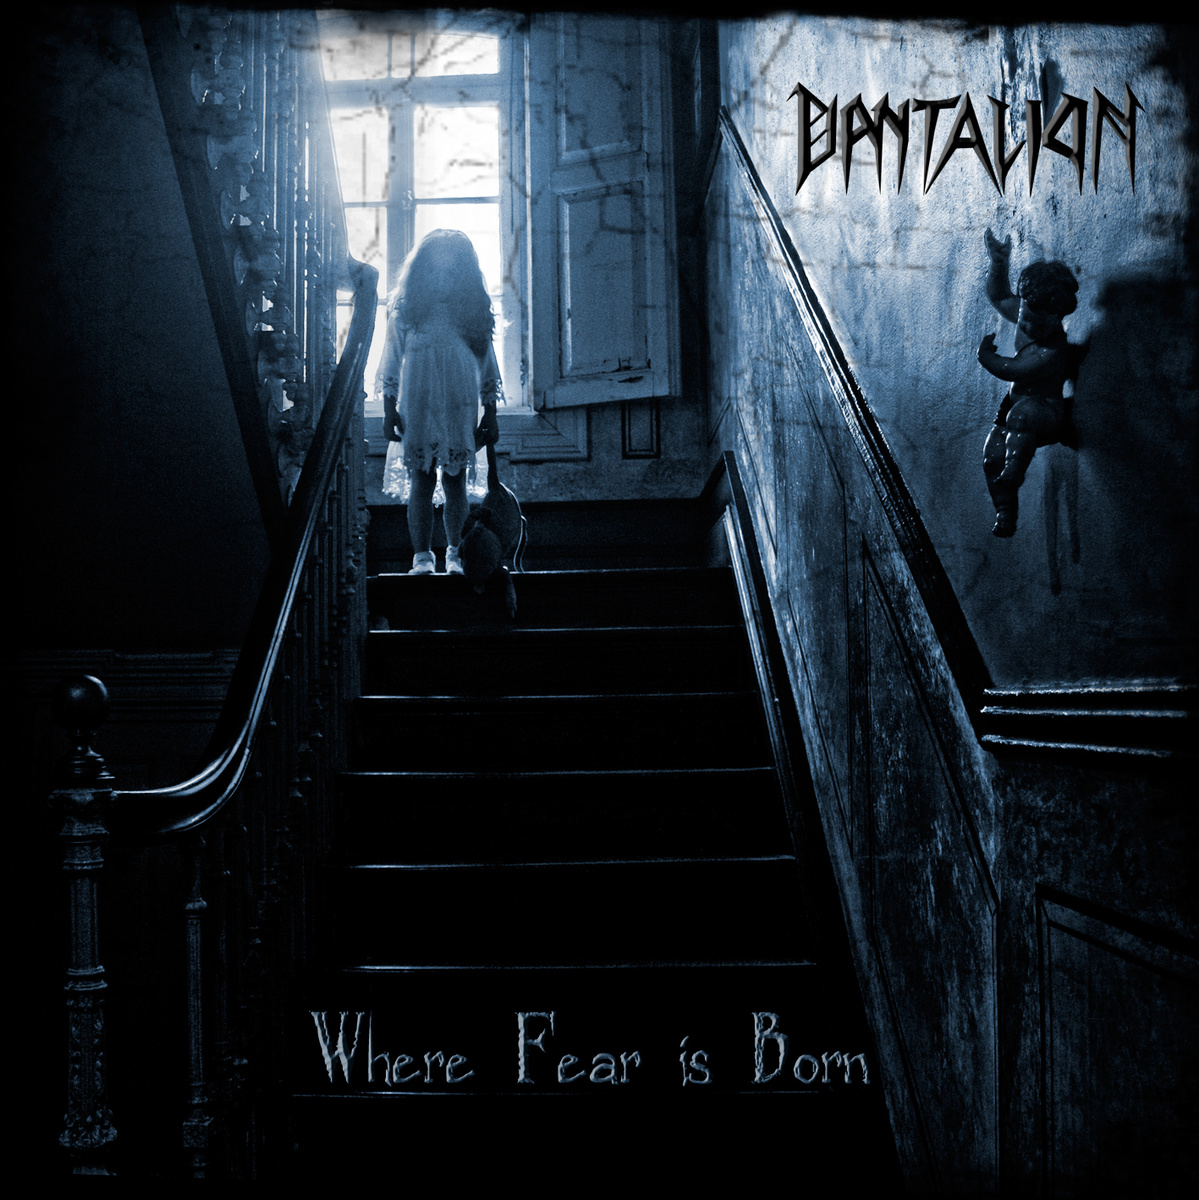 Dantalion – Where Fear is Born Review